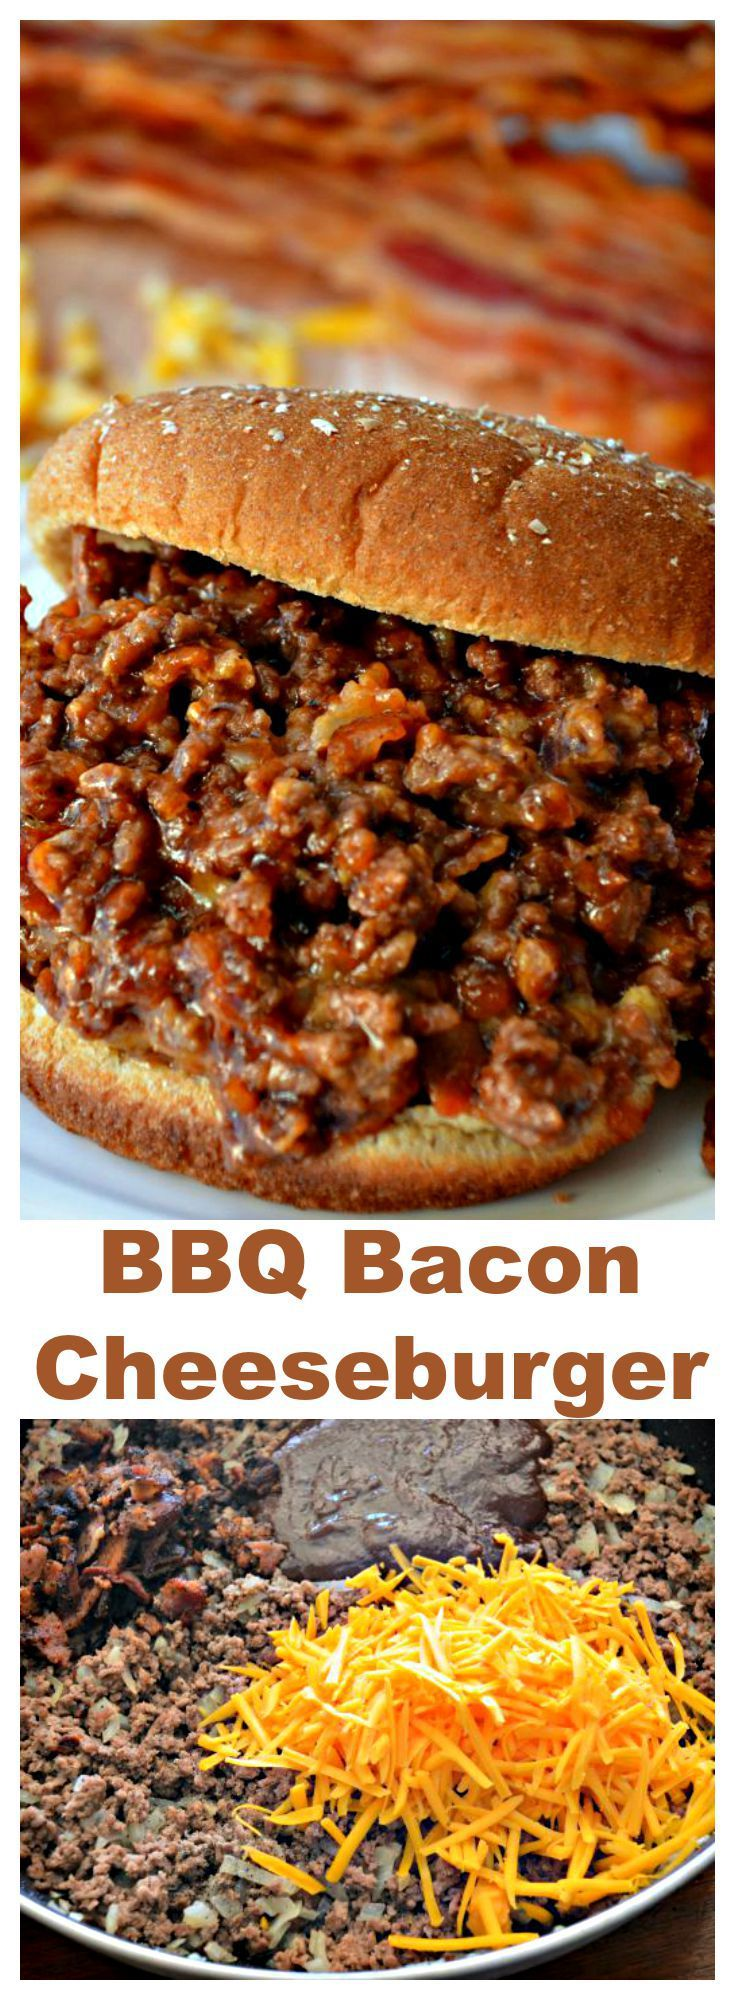 HOW TO MAKE BEST BBQ BACON CHEESEBURGERS - If you enjoy BBQ Bacon Cheeseburgers and the simplicity of a Sloppy Joe, you will love this BBQ Bacon Cheeseburger Sandwich  PRINT RECIPE HERE: http://recipesforourdailybread.com/bbq-bacon-cheeseburger-sandwich/